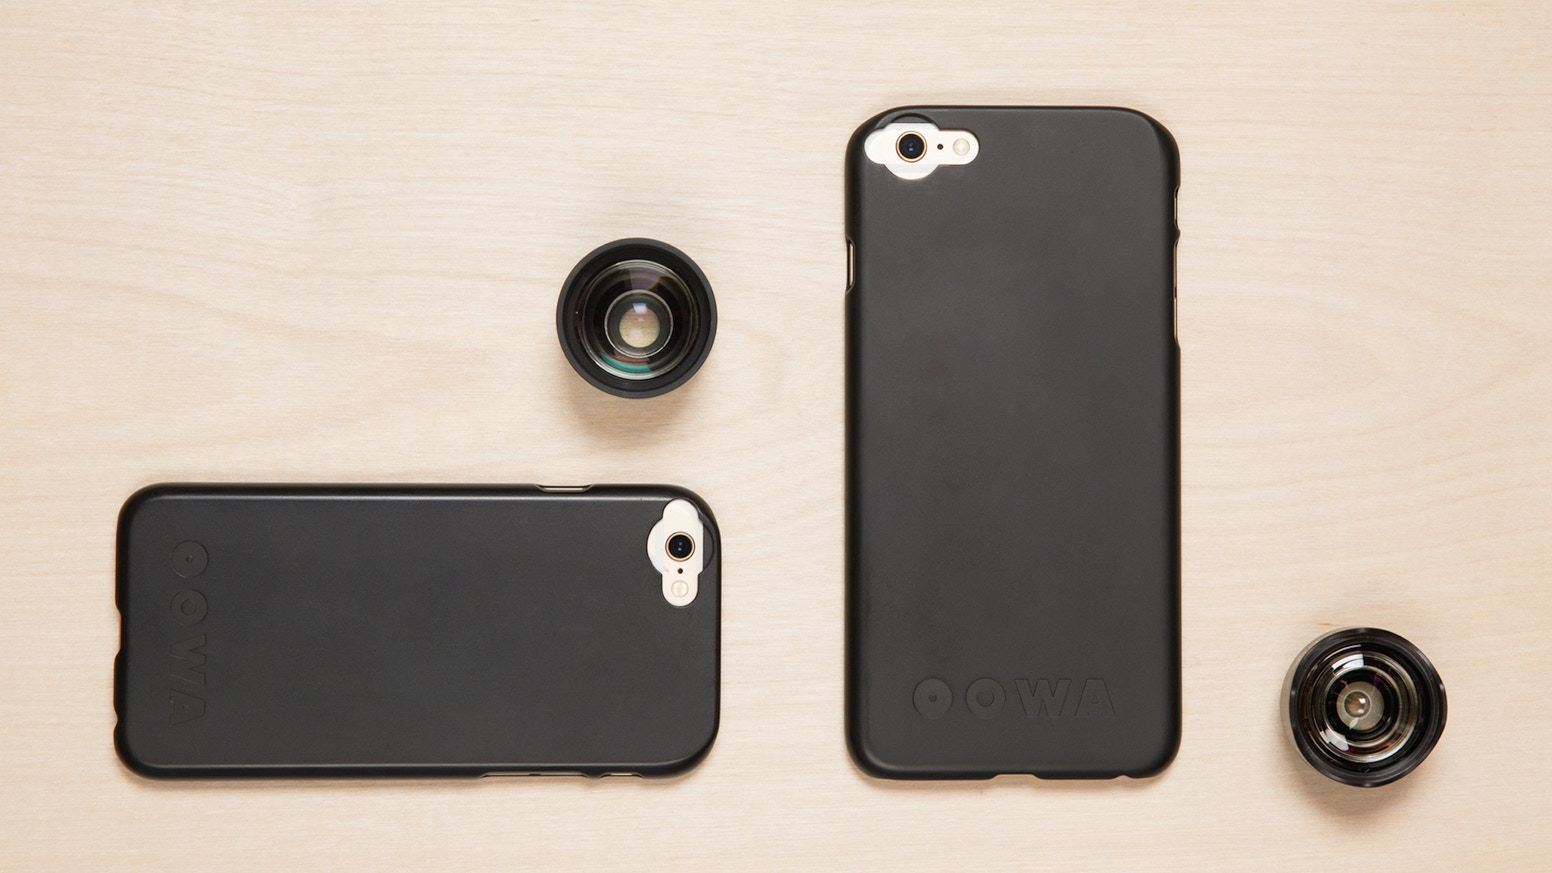 The highest-quality lens attachments ever created for mobile photography. We believe photos should be as incredible as our experiences.